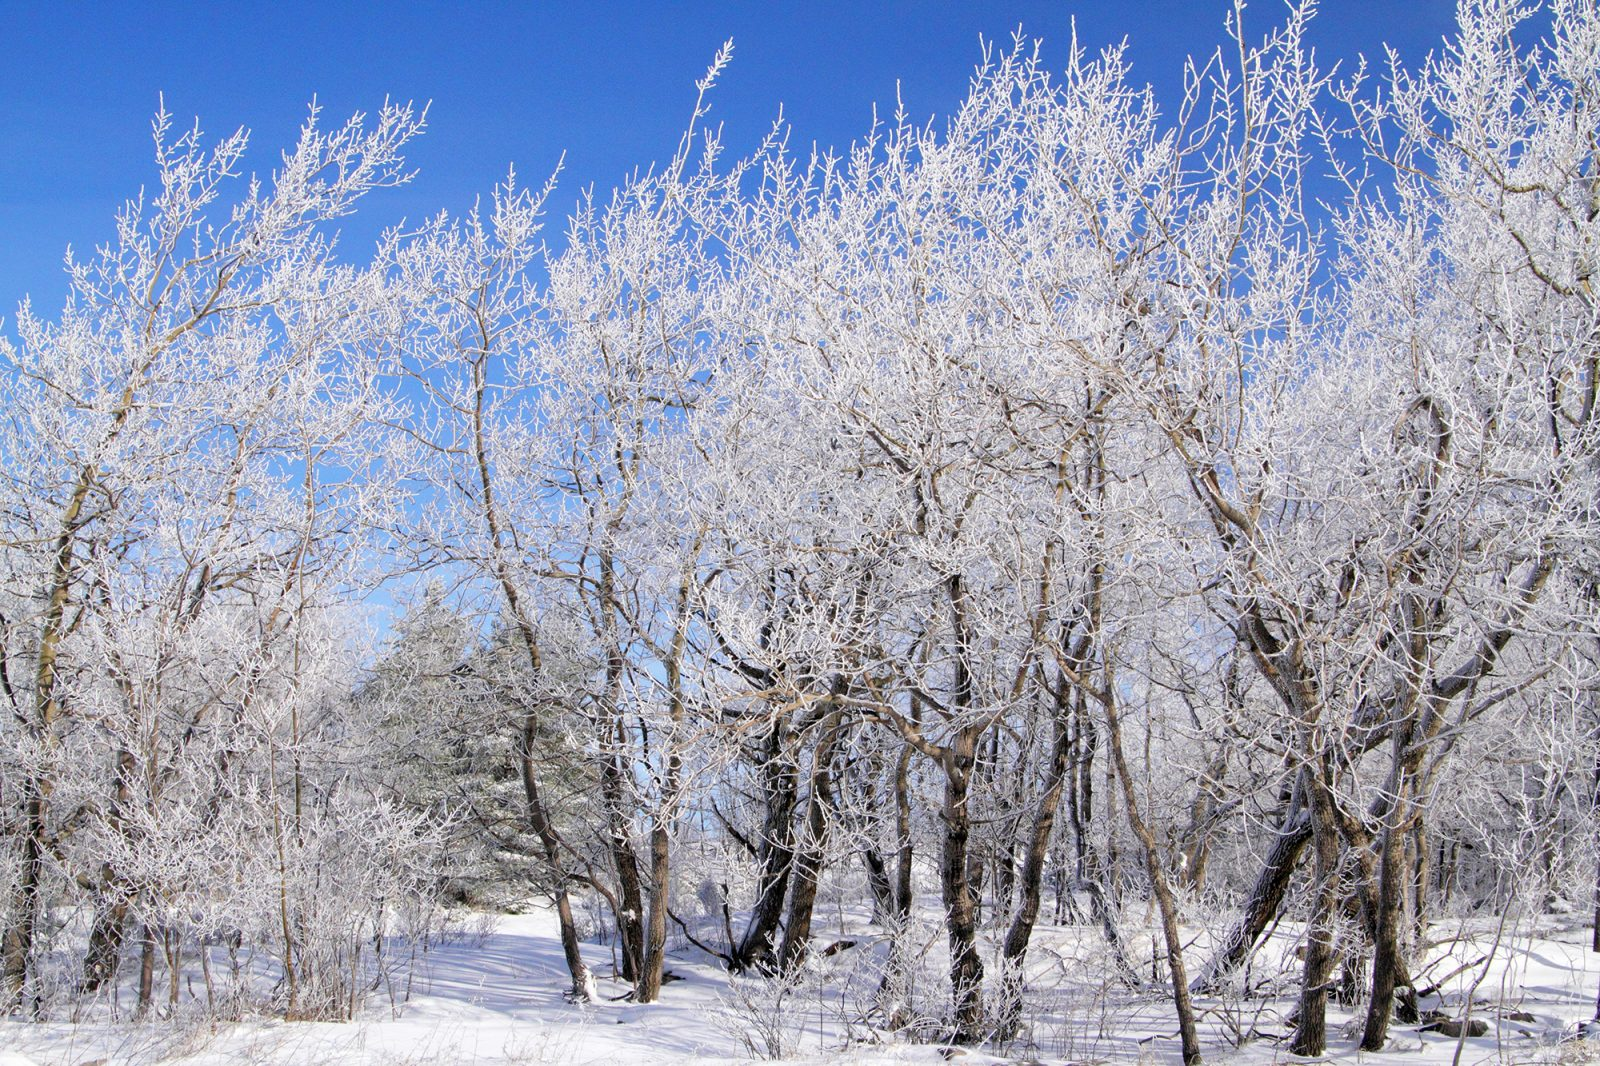 Snow piled up on branches in winter